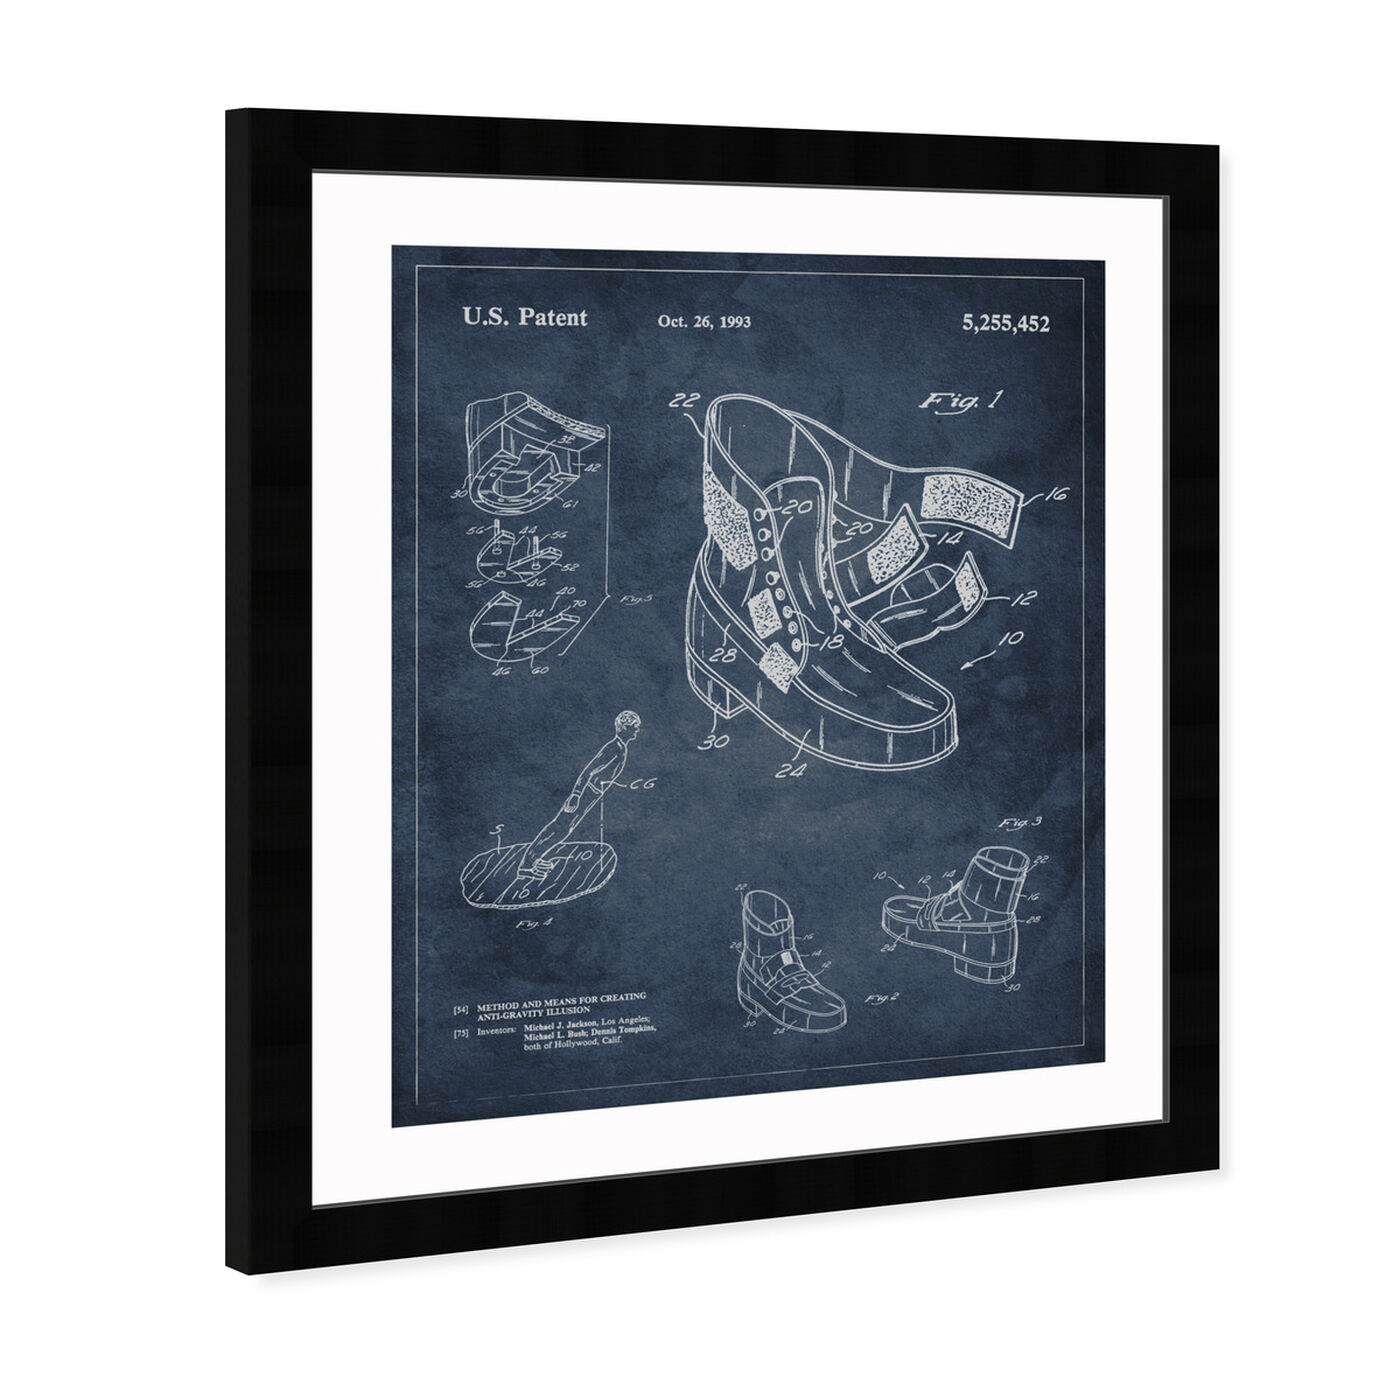 Angled view of Michael Jackson Moonwalk Shoes 1993 featuring music and dance and musicians art.